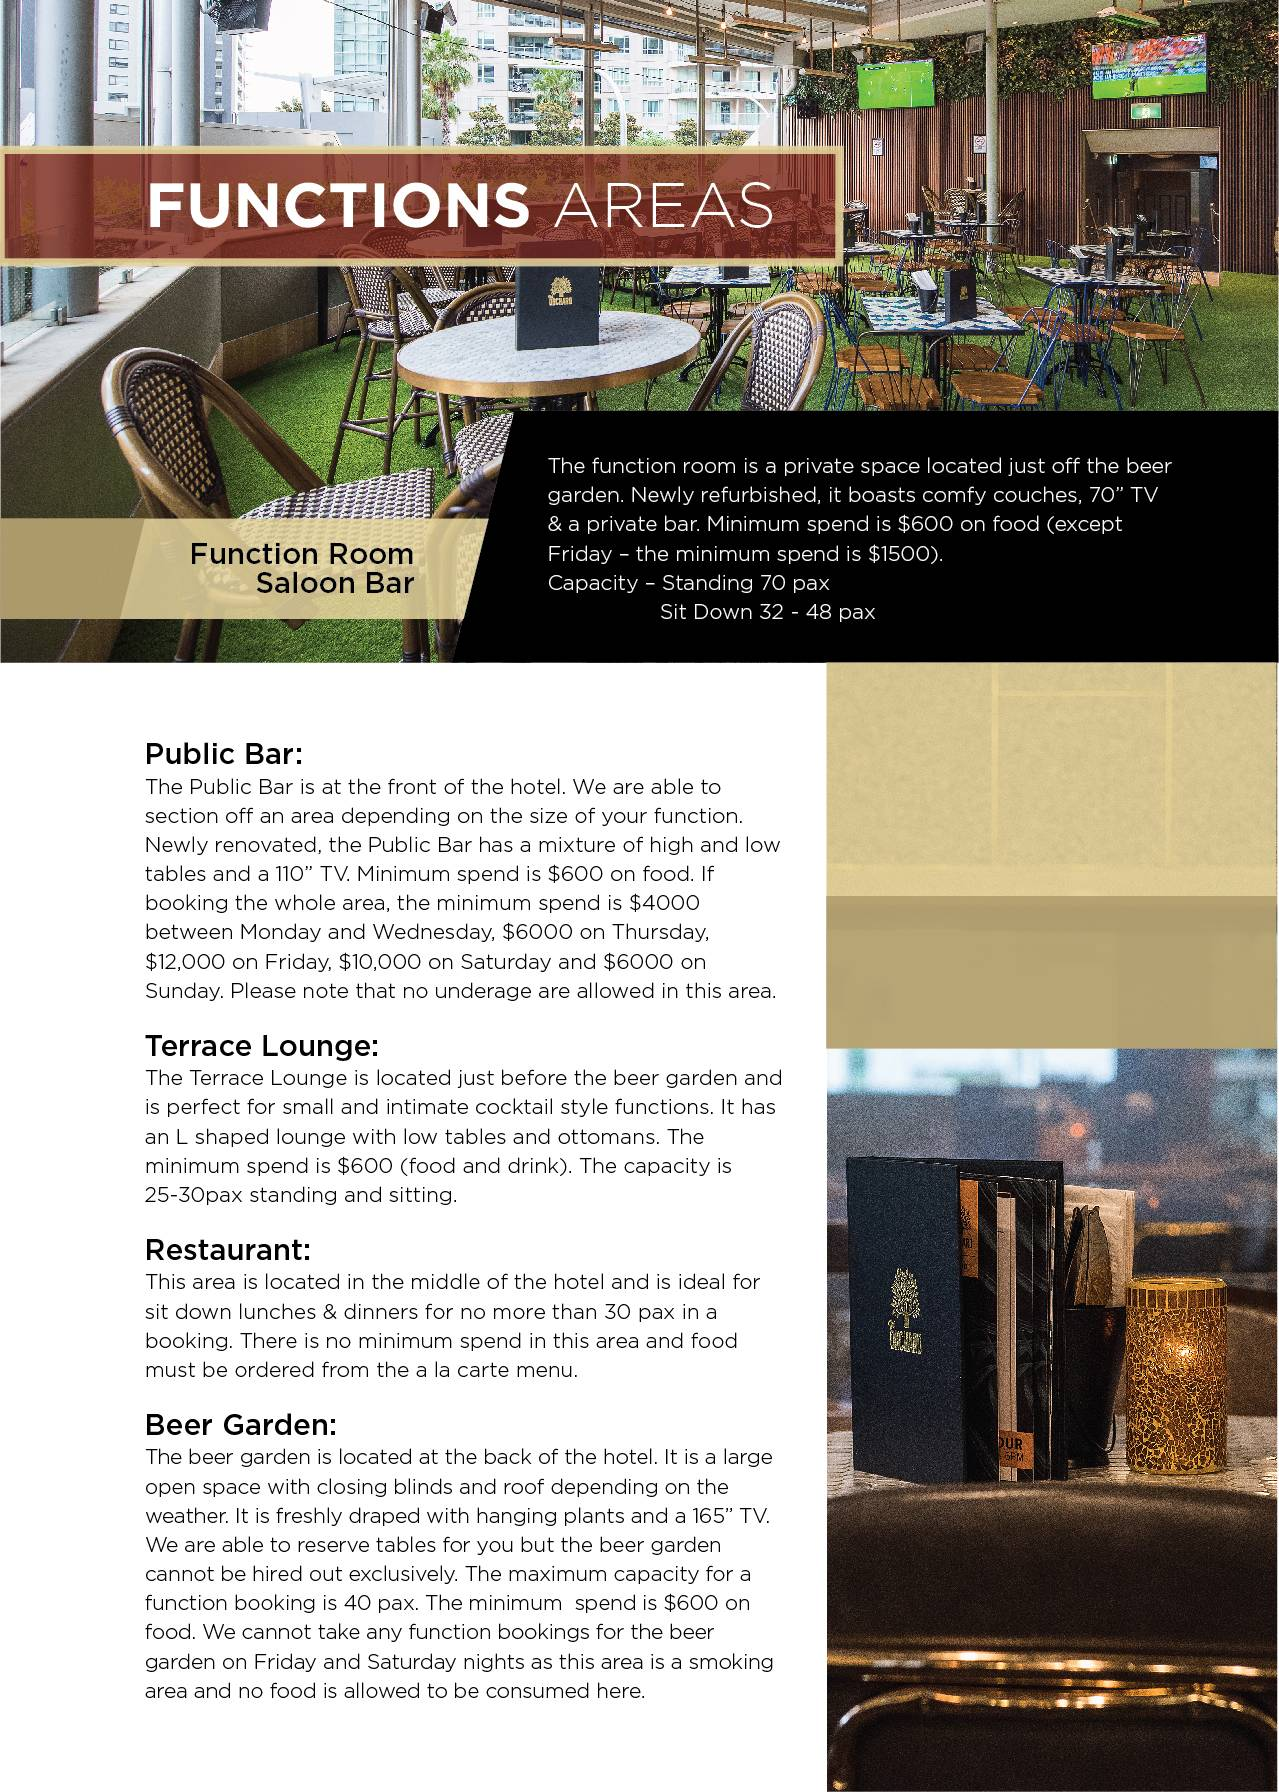 Orchard Hotel Function Package Design 28 08 19 02